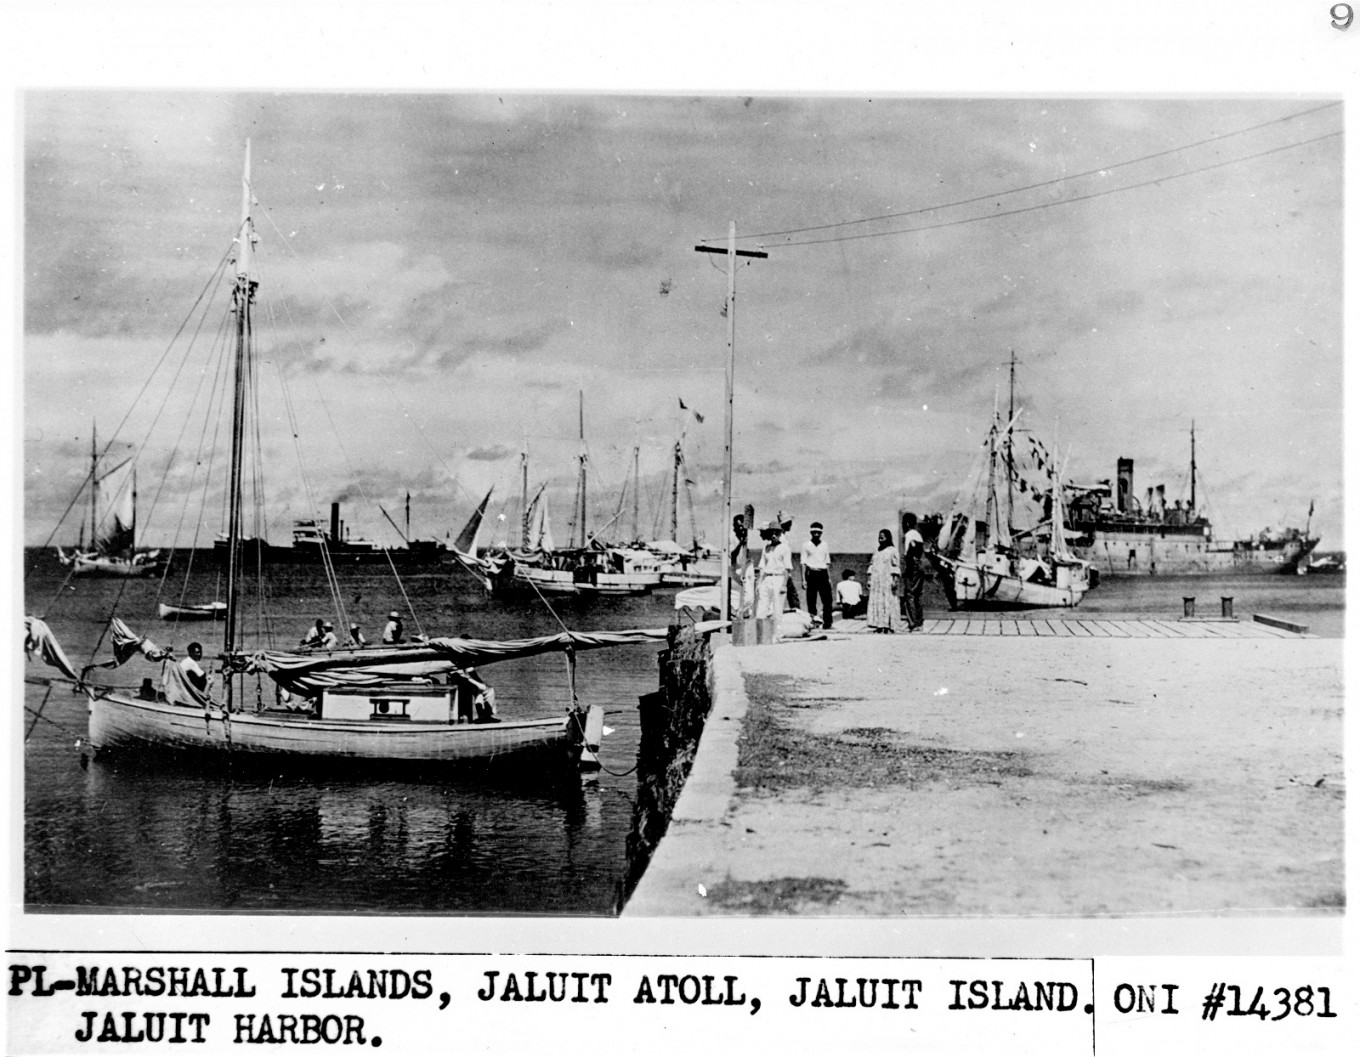 In this photo released by the US National Archives and received by AFP on July 6, 2017, shows a group of people standing on a dock in the 1930's, one that may be Amelia Earhart, on the Jaluit Atoll, Marshall islands.